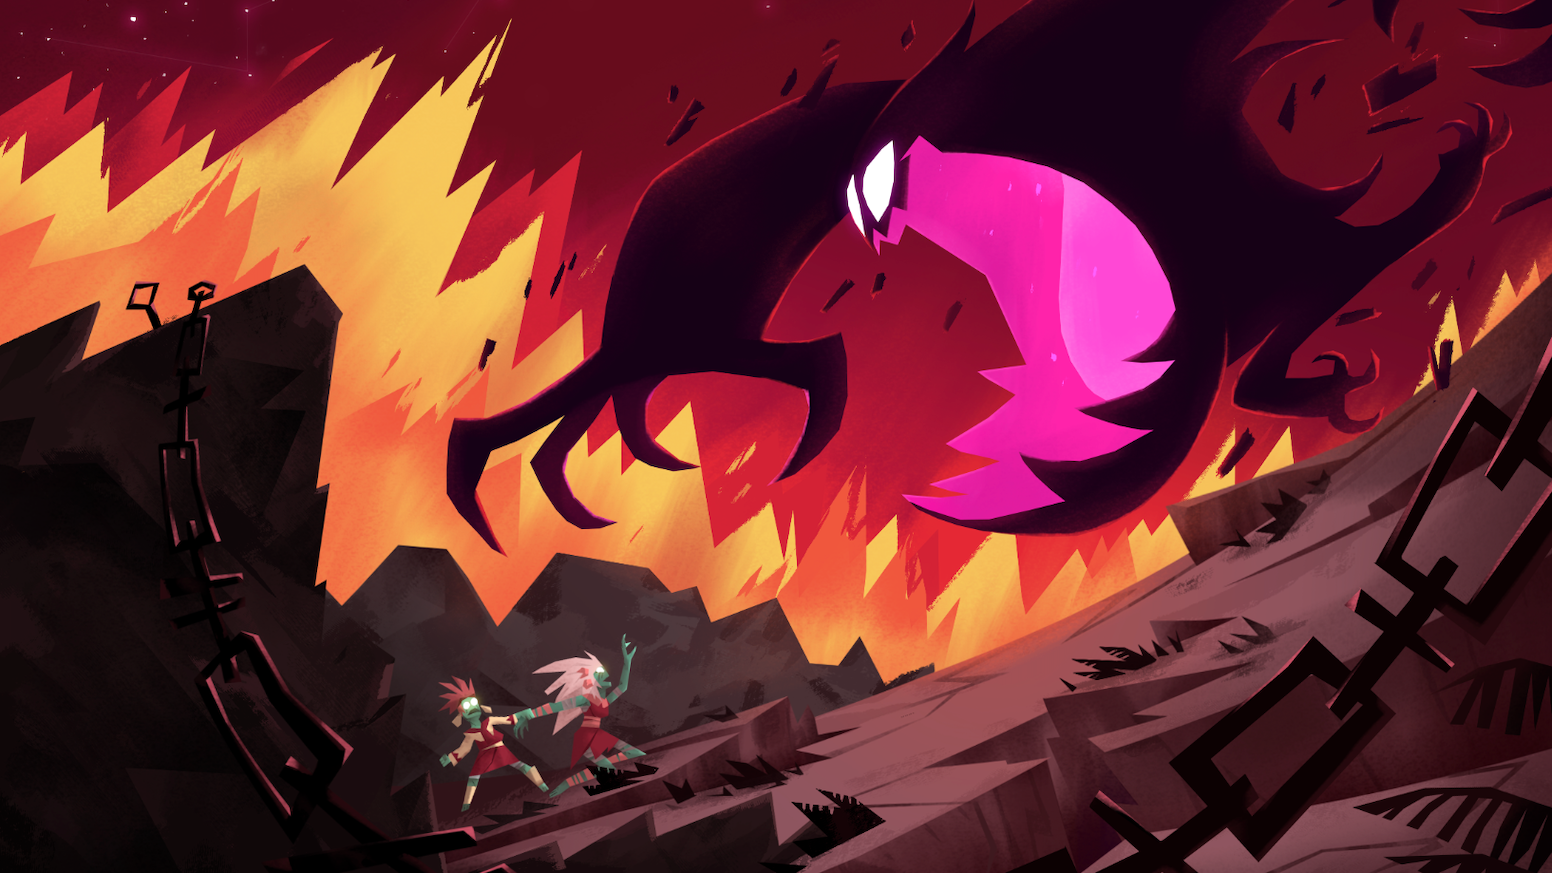 INLIGHT is a merciless and atmospheric 2D action game where everything wants you dead.